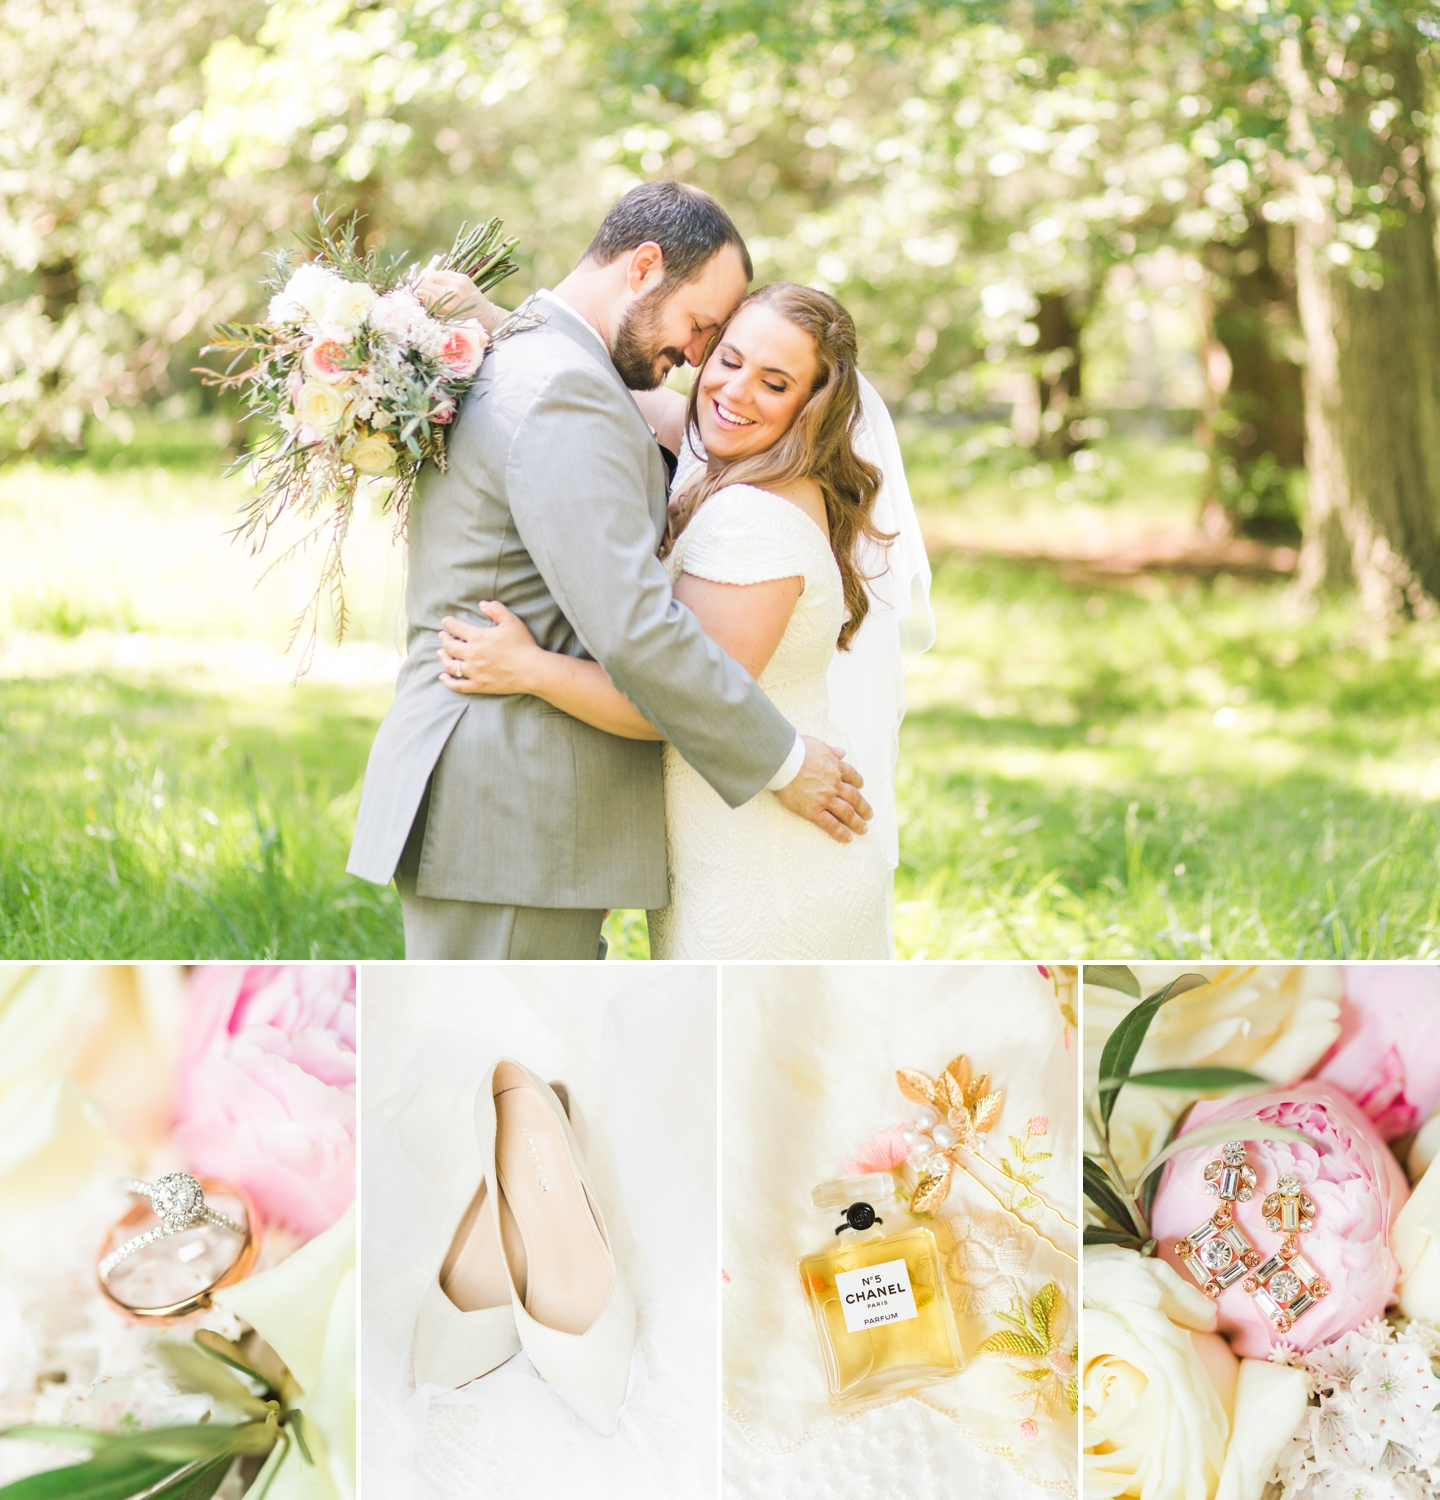 edgerton-park-wedding-new-haven-connecticut-photographer-shaina-lee-photography-photo.jpg